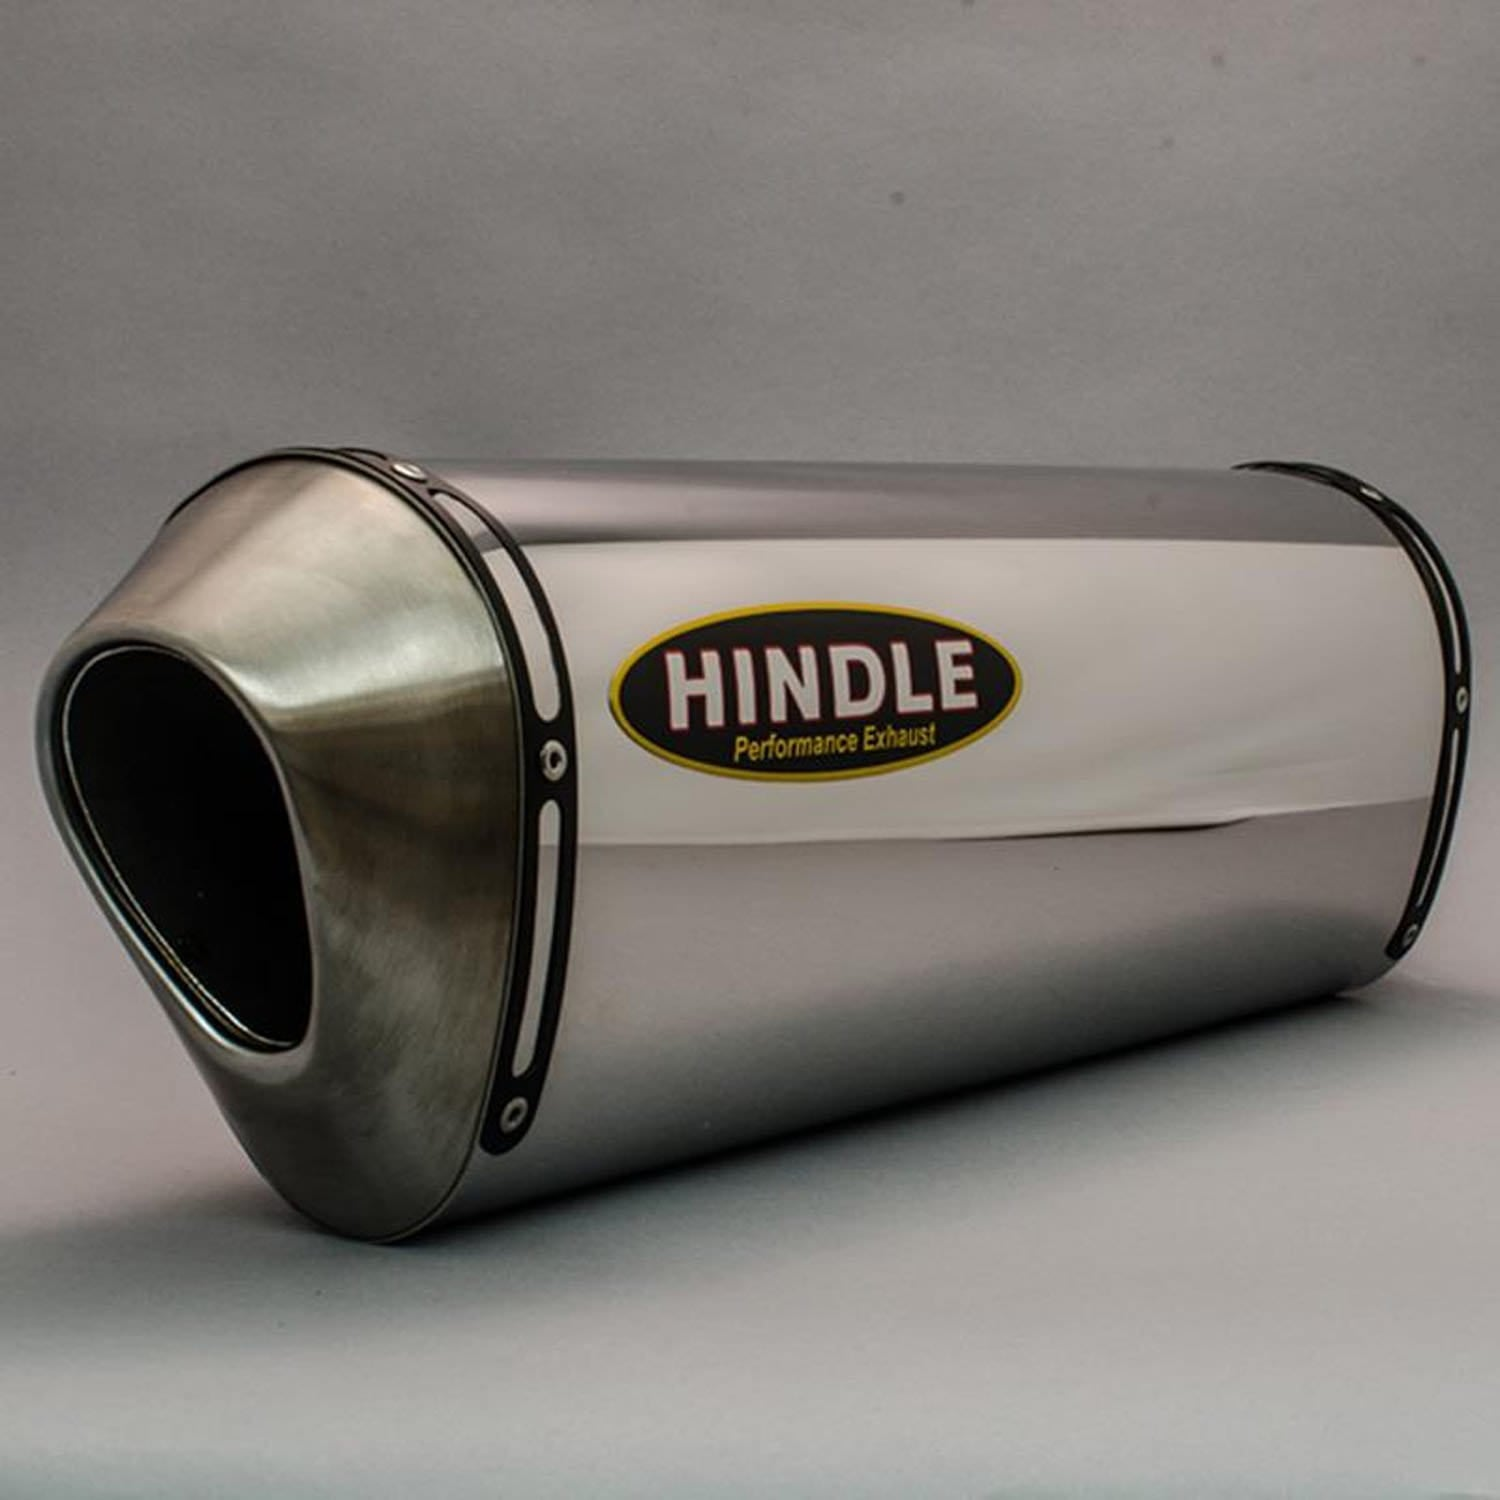 Hindle Evolution Full System Triumph 675/R 2013-17